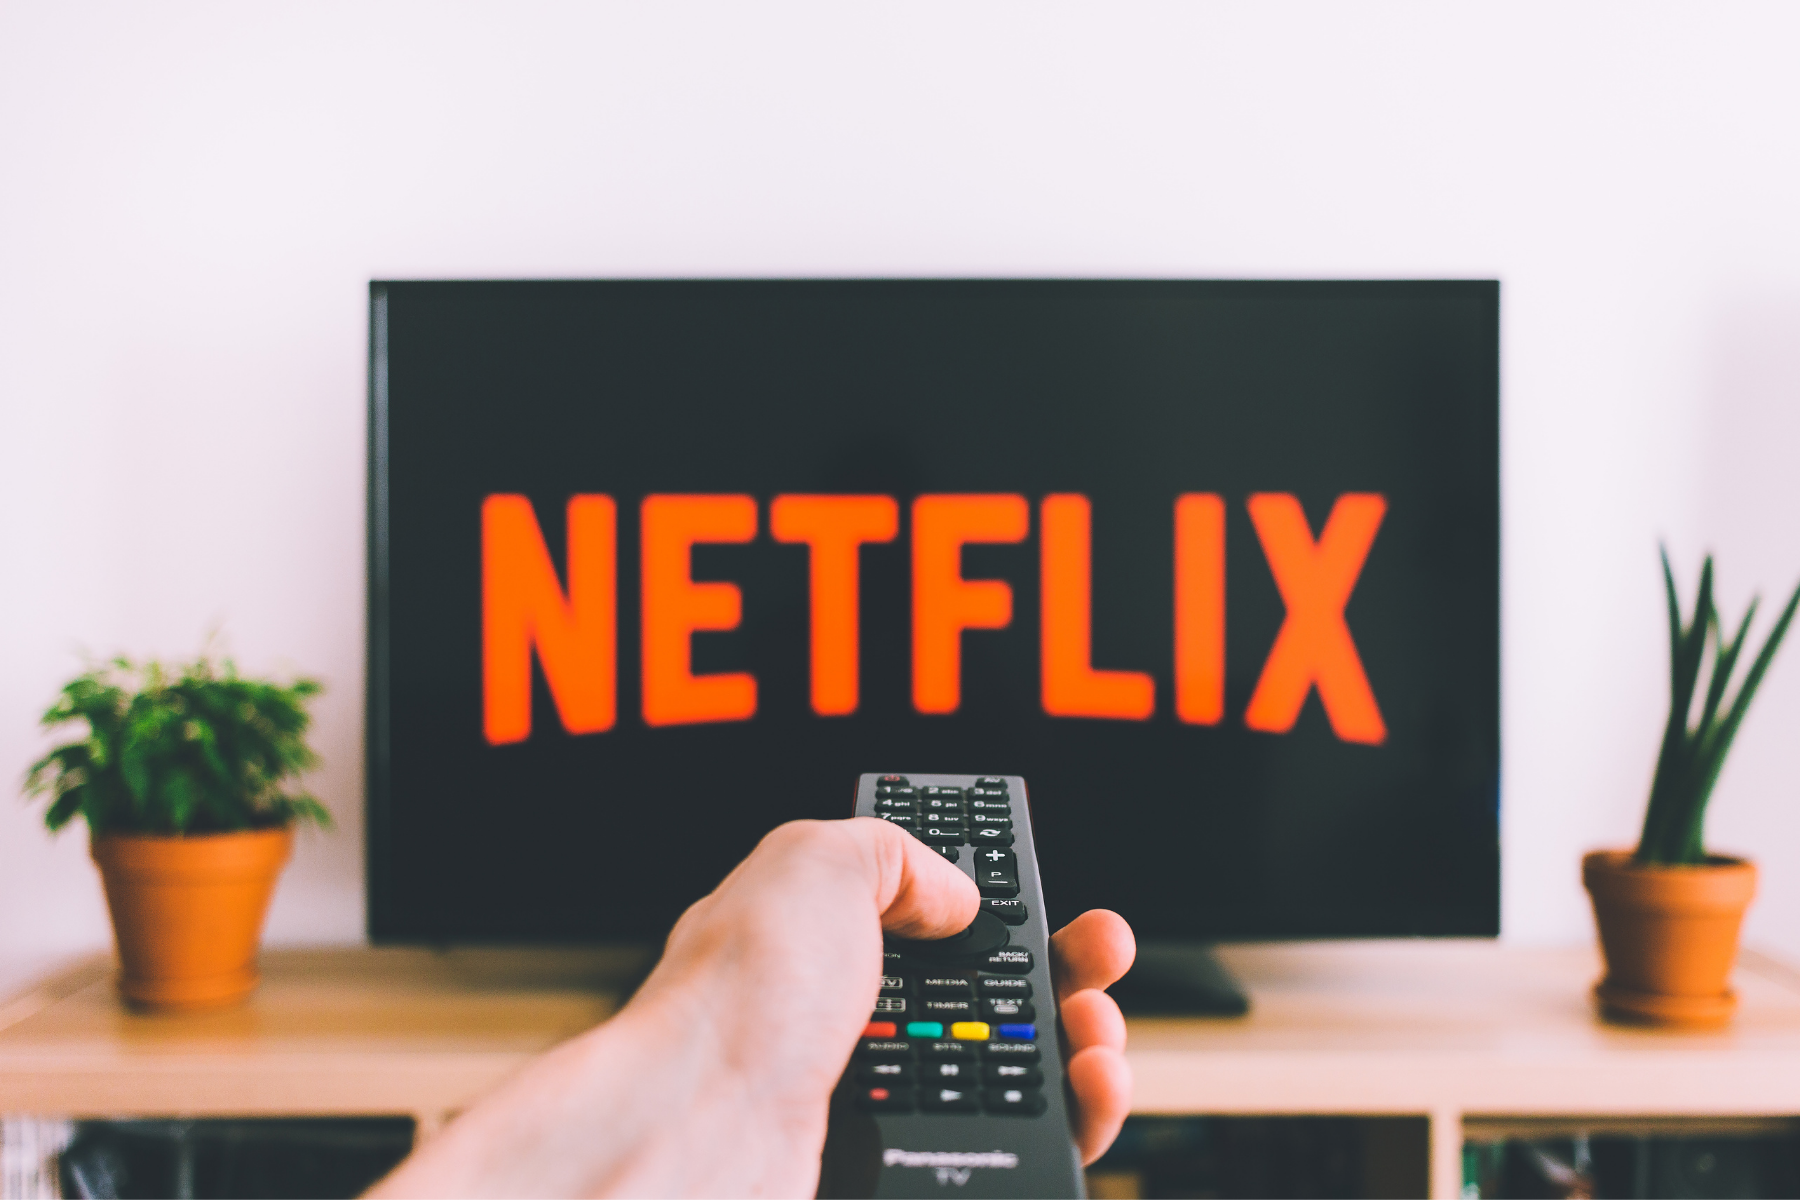 Netflix announce new TV series and films coming to the platform in August